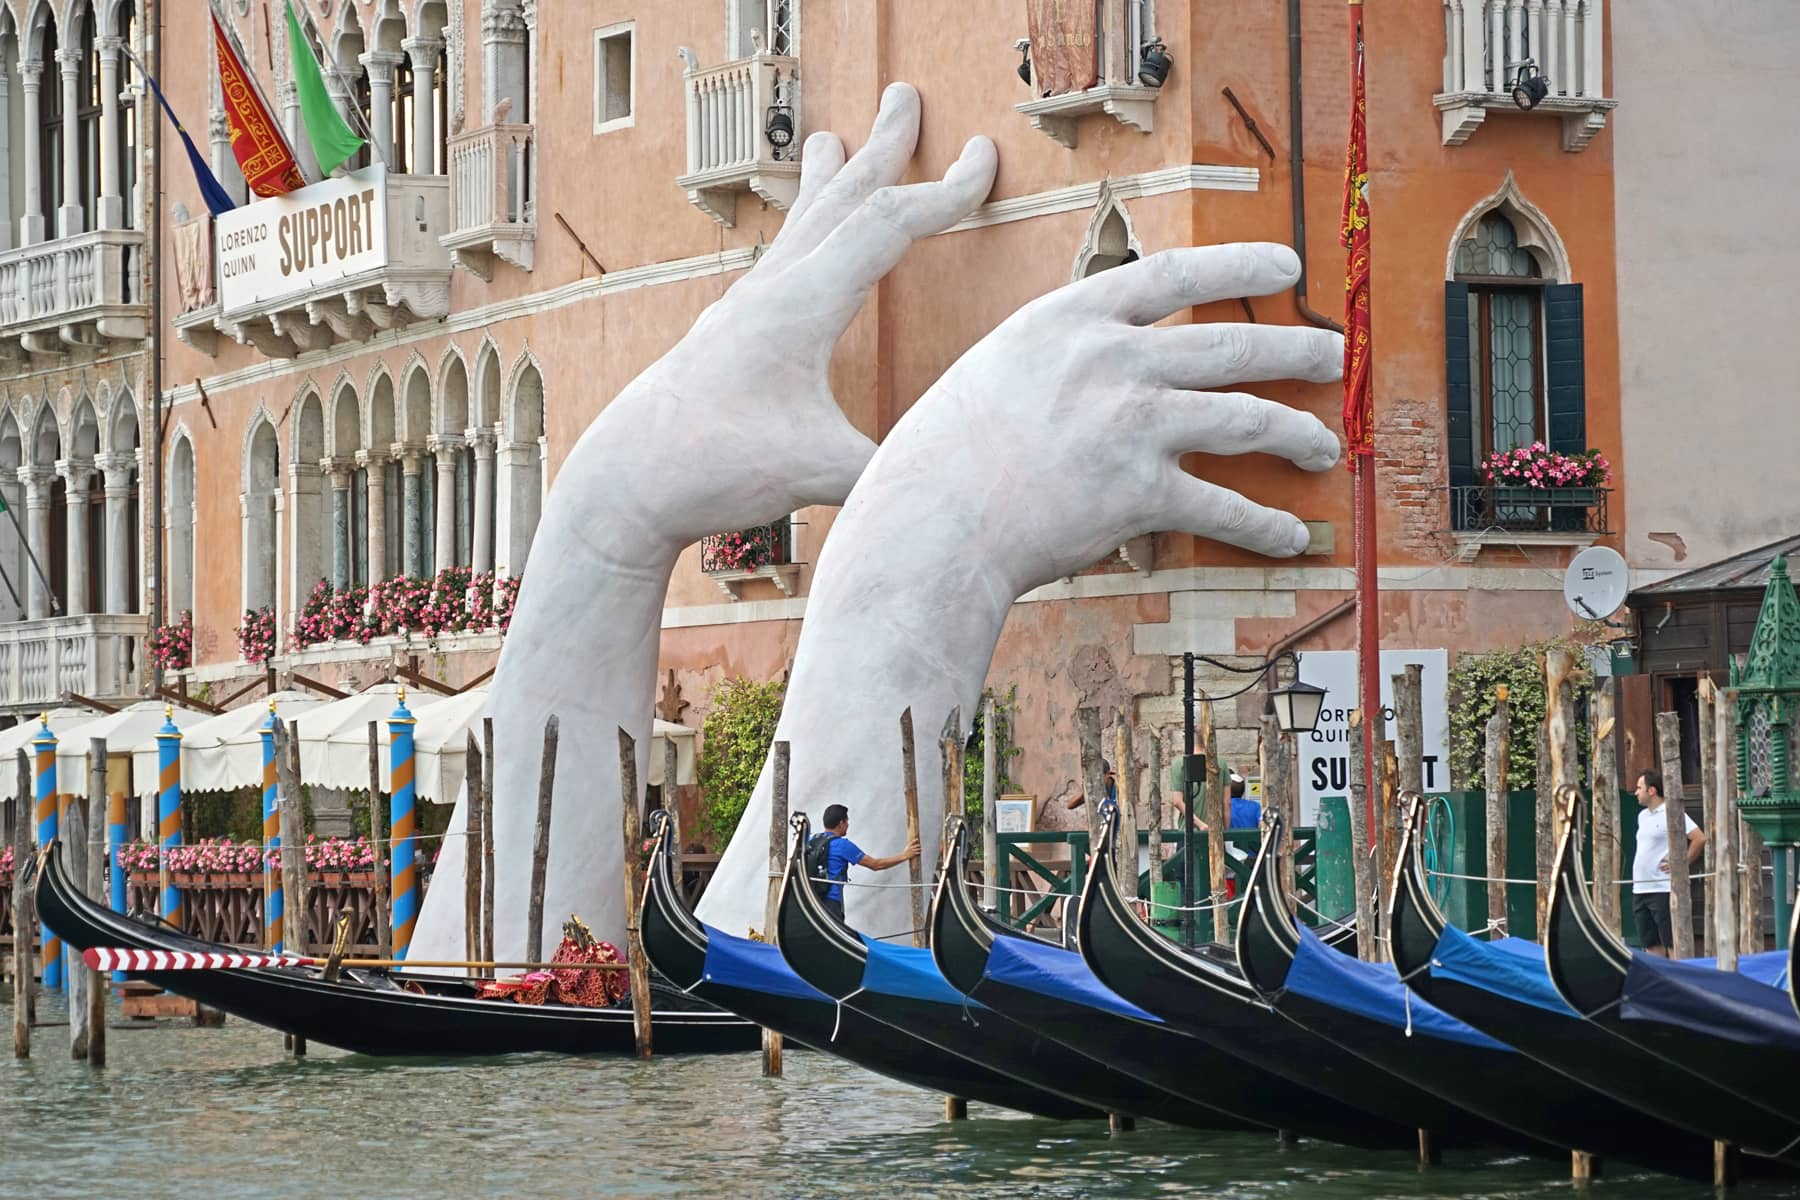 Venice Art Biennale 2019: All the pavilions and works worth checking out